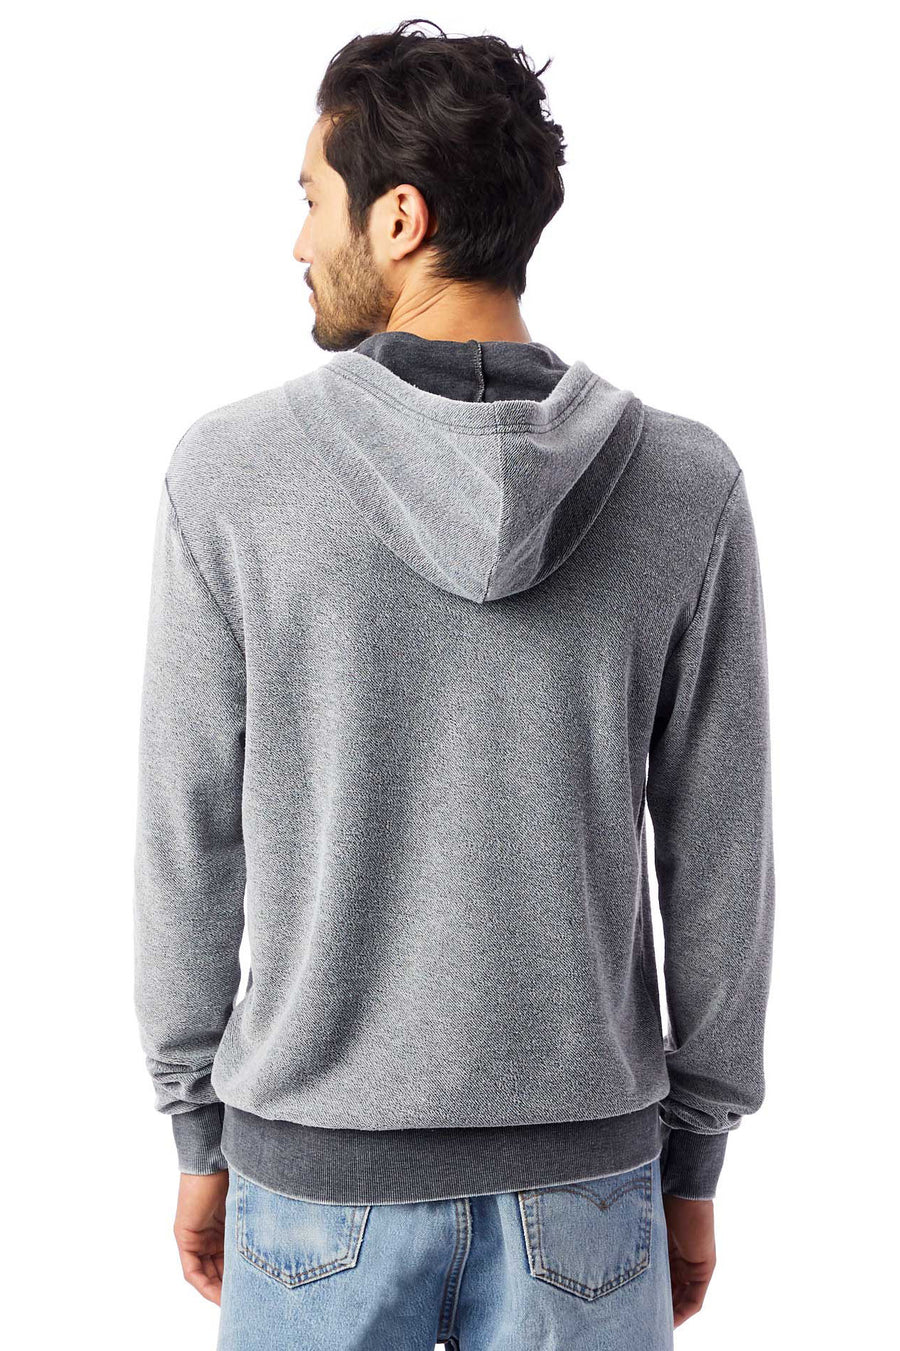 Challenger Loopside Burnout French Terry Pullover - Washed Black - Pavilion